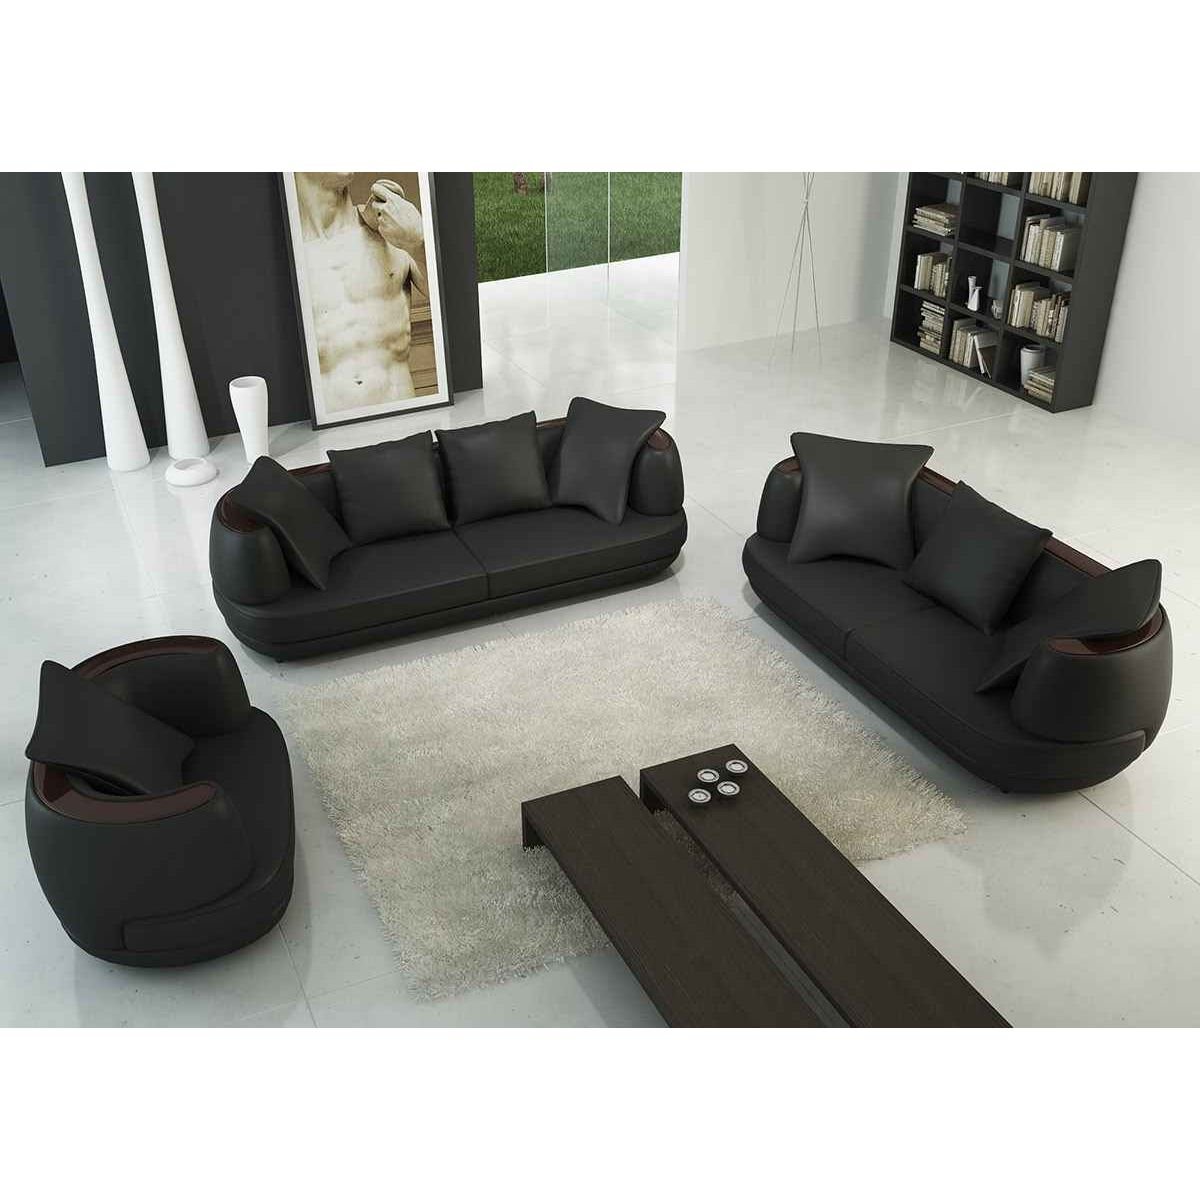 deco in paris ensemble canape 3 2 1 places noir en cuir ryga ryga 3 2 1 noir. Black Bedroom Furniture Sets. Home Design Ideas